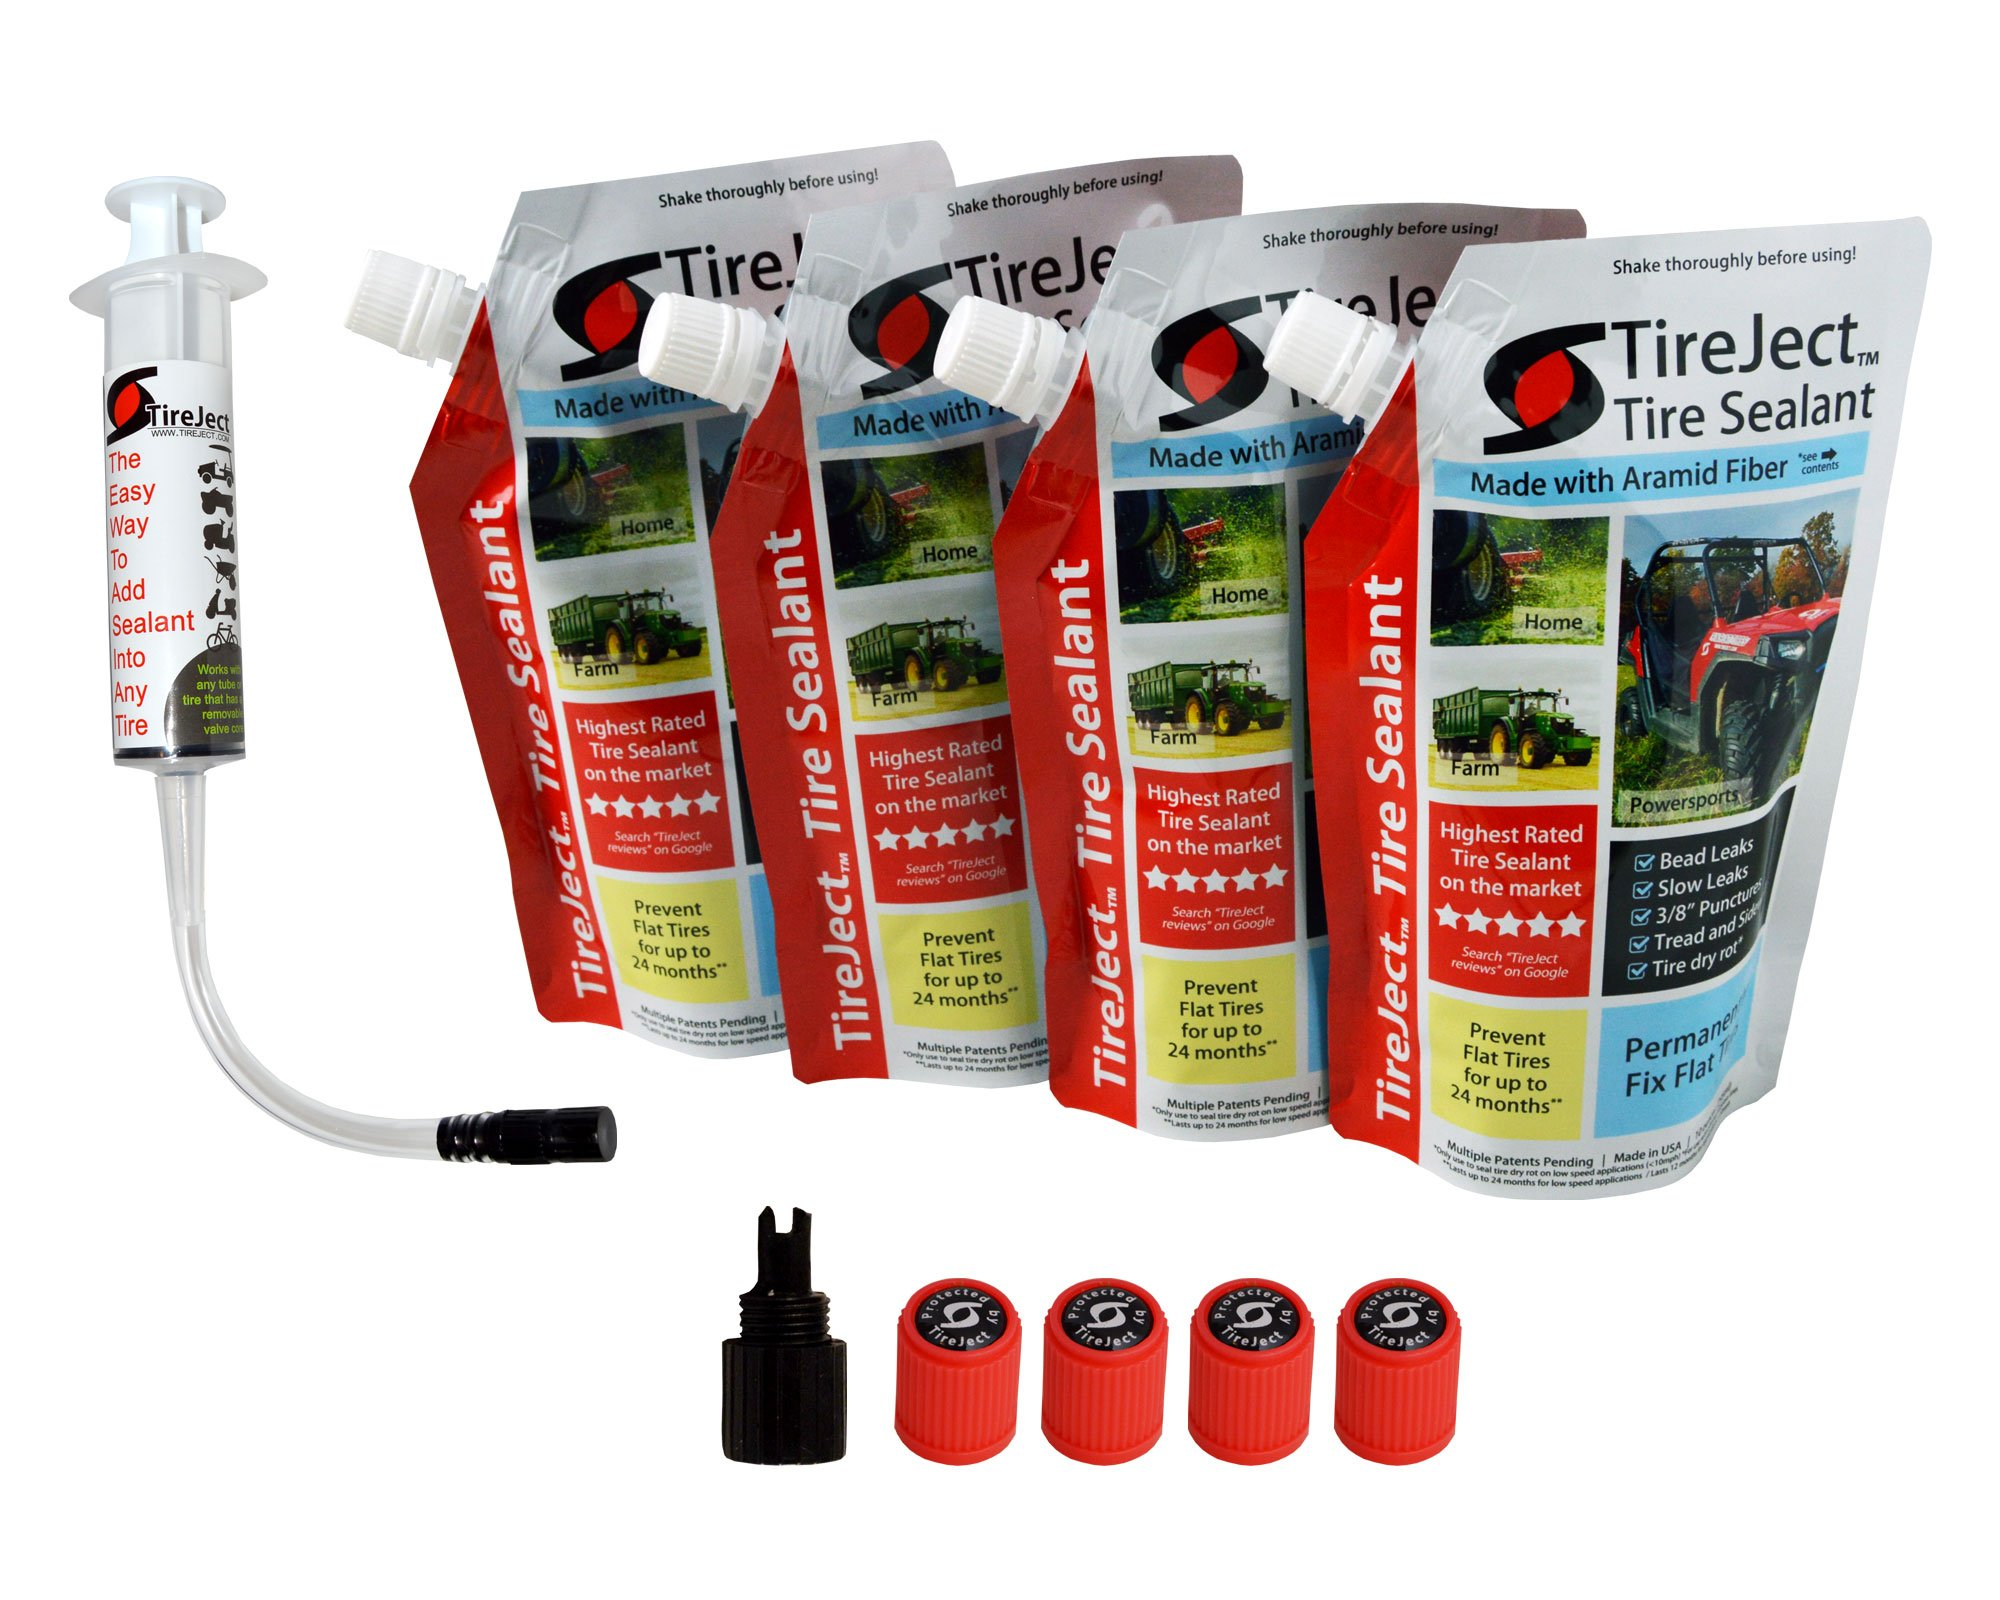 TireJect Tire Sealant - 40oz Tire Repair Kit (Protect 4 ATV Tires - Tubeless Puncture Repair Kit Fix Flat Tyres)